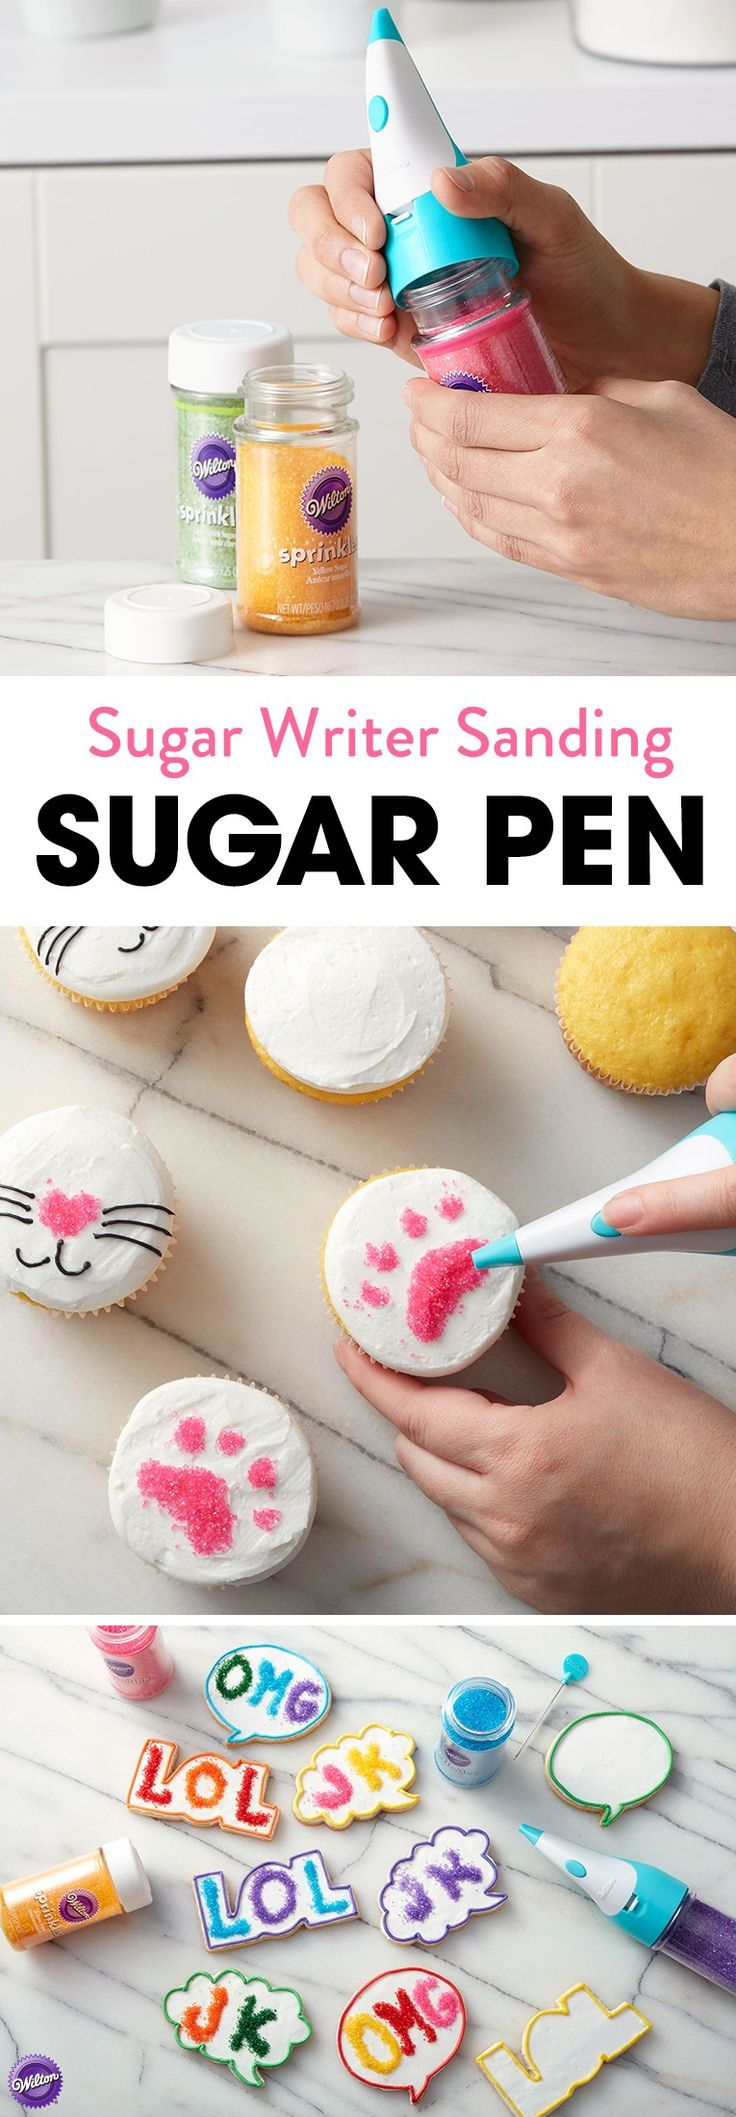 The Wilton Sugar Writer Sanding Sugar Pen makes it easy for you to create colorful messages, designs and other personalized touches, all in beautiful, sparkling sanding sugars.